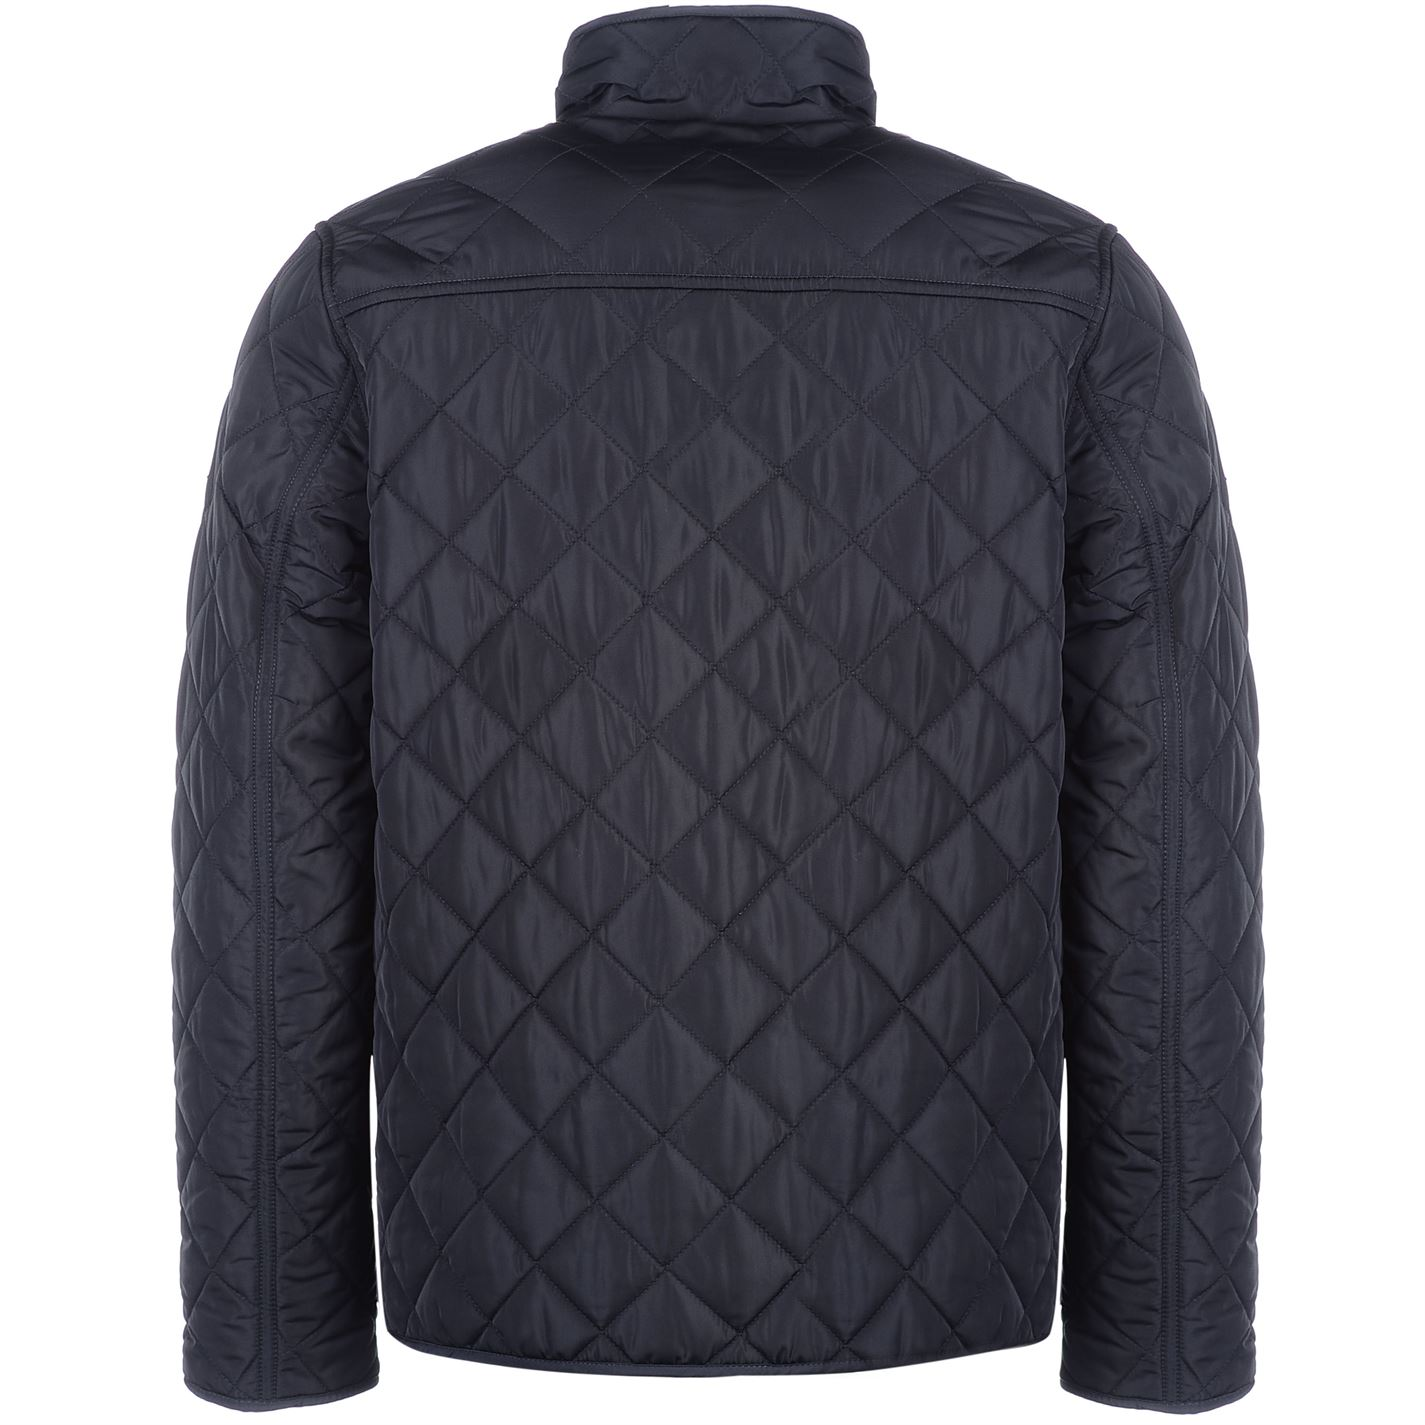 Mens-Firetrap-Kingdom-Jacket-Quilted-Long-Sleeve-New thumbnail 9